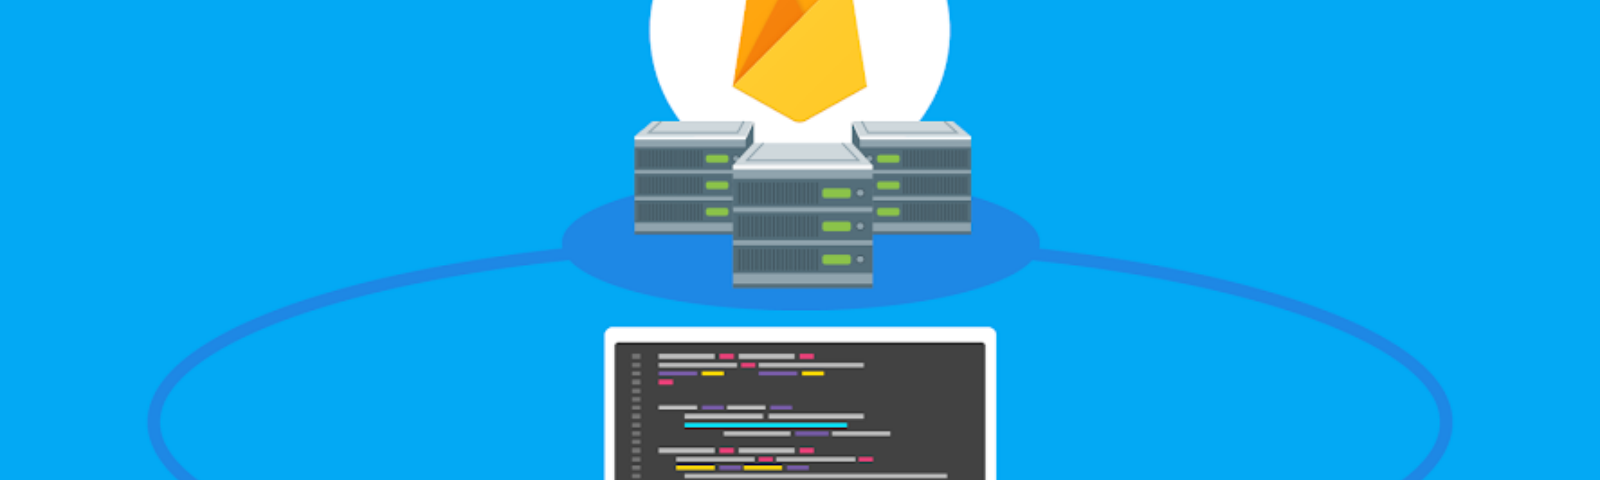 Firebase Cloud Functions: the great, the meh, and the ugly